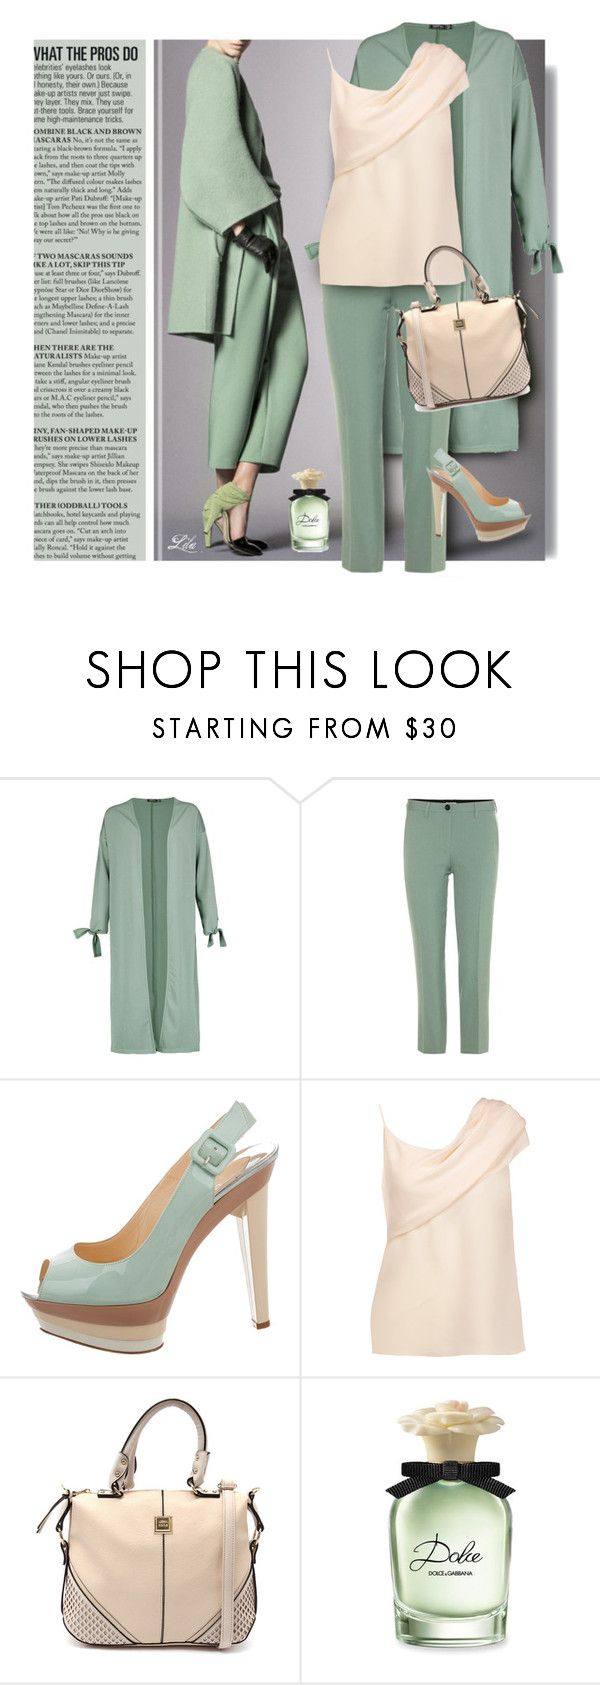 """""""Chic Getaway"""" by breathing-style ❤ liked on Polyvore featuring Boohoo, Miu Miu, Christian Louboutin, Cushnie Et Ochs and Dolce&Gabbana"""